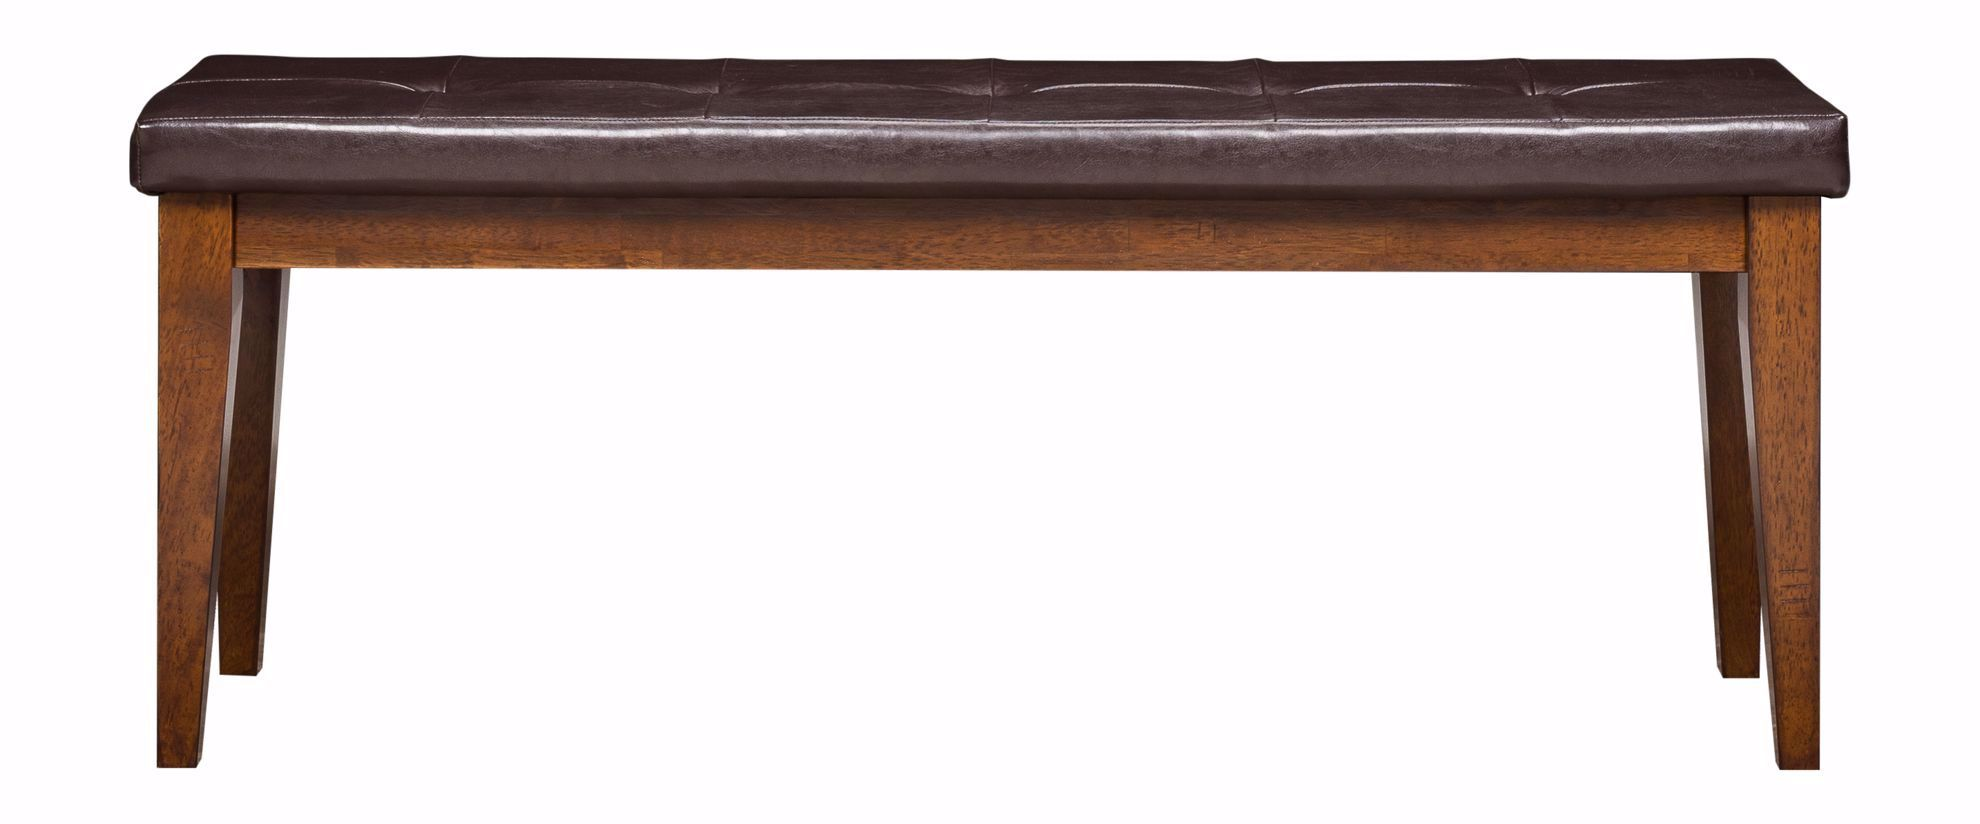 Picture of Kona Bench